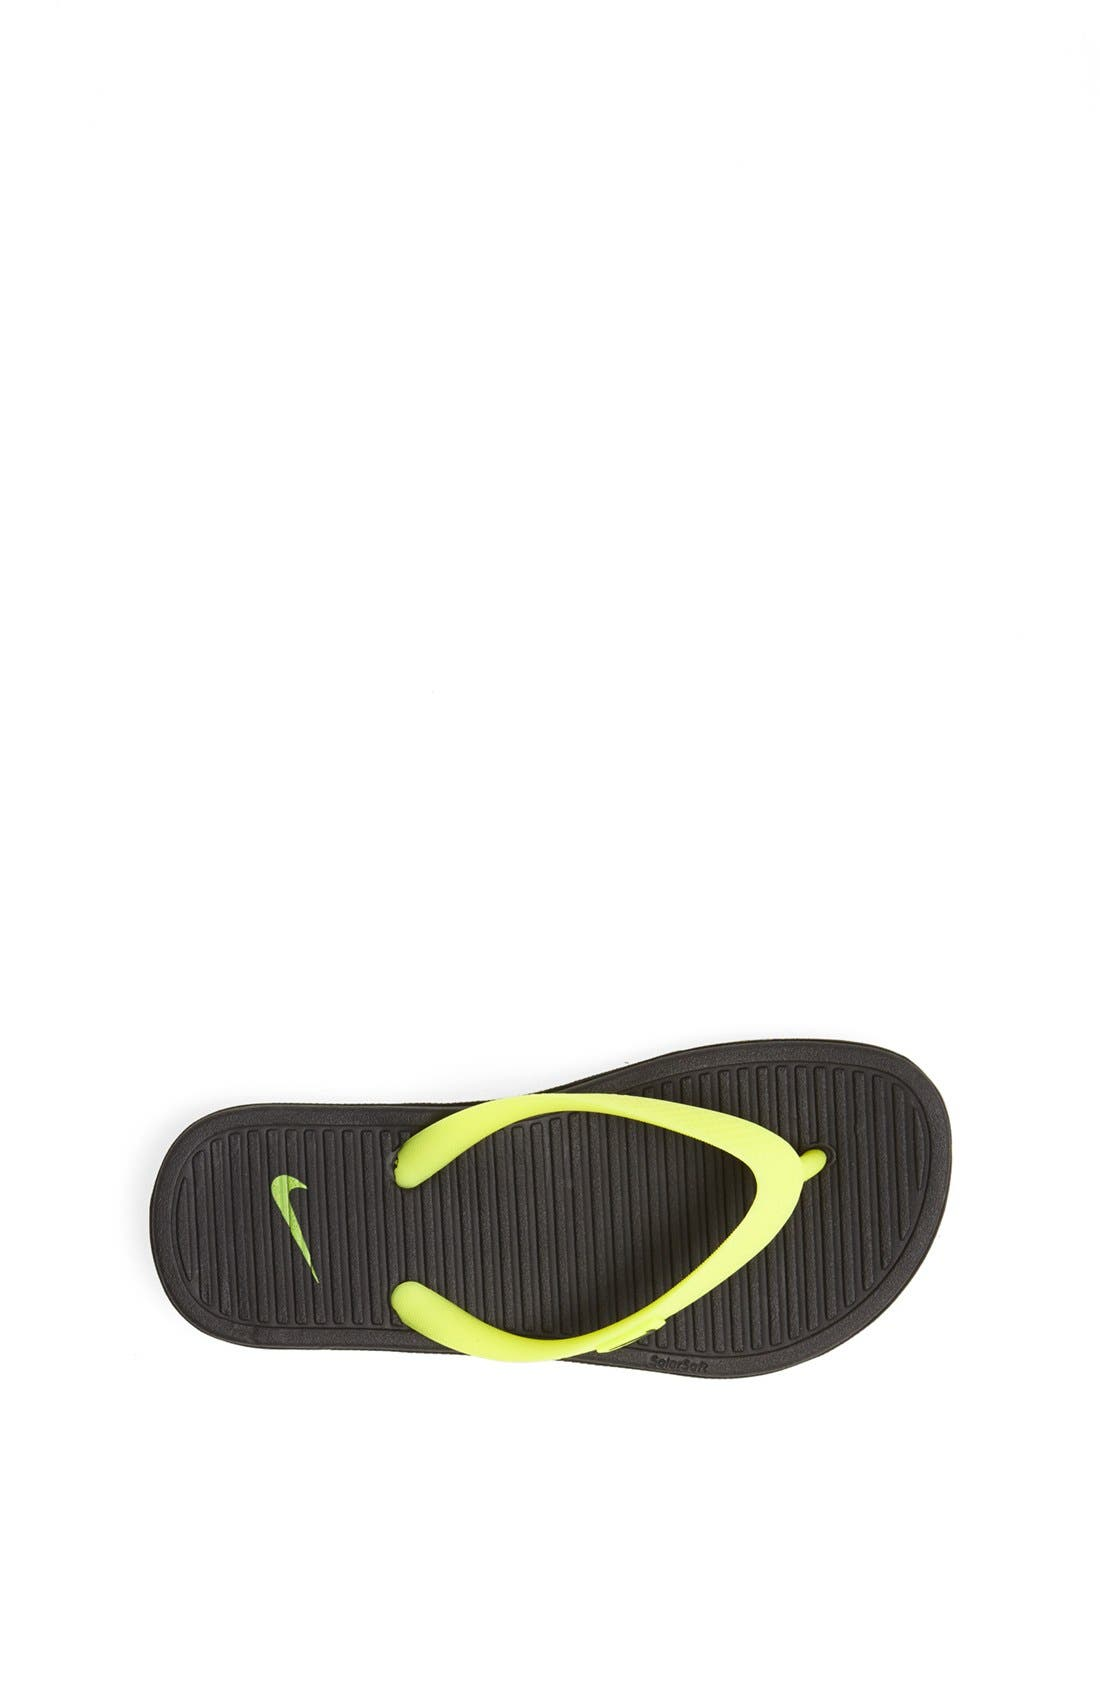 Alternate Image 3  - Nike Solarsoft Thong Sandal (Toddler, Little Kid & Big Kid)